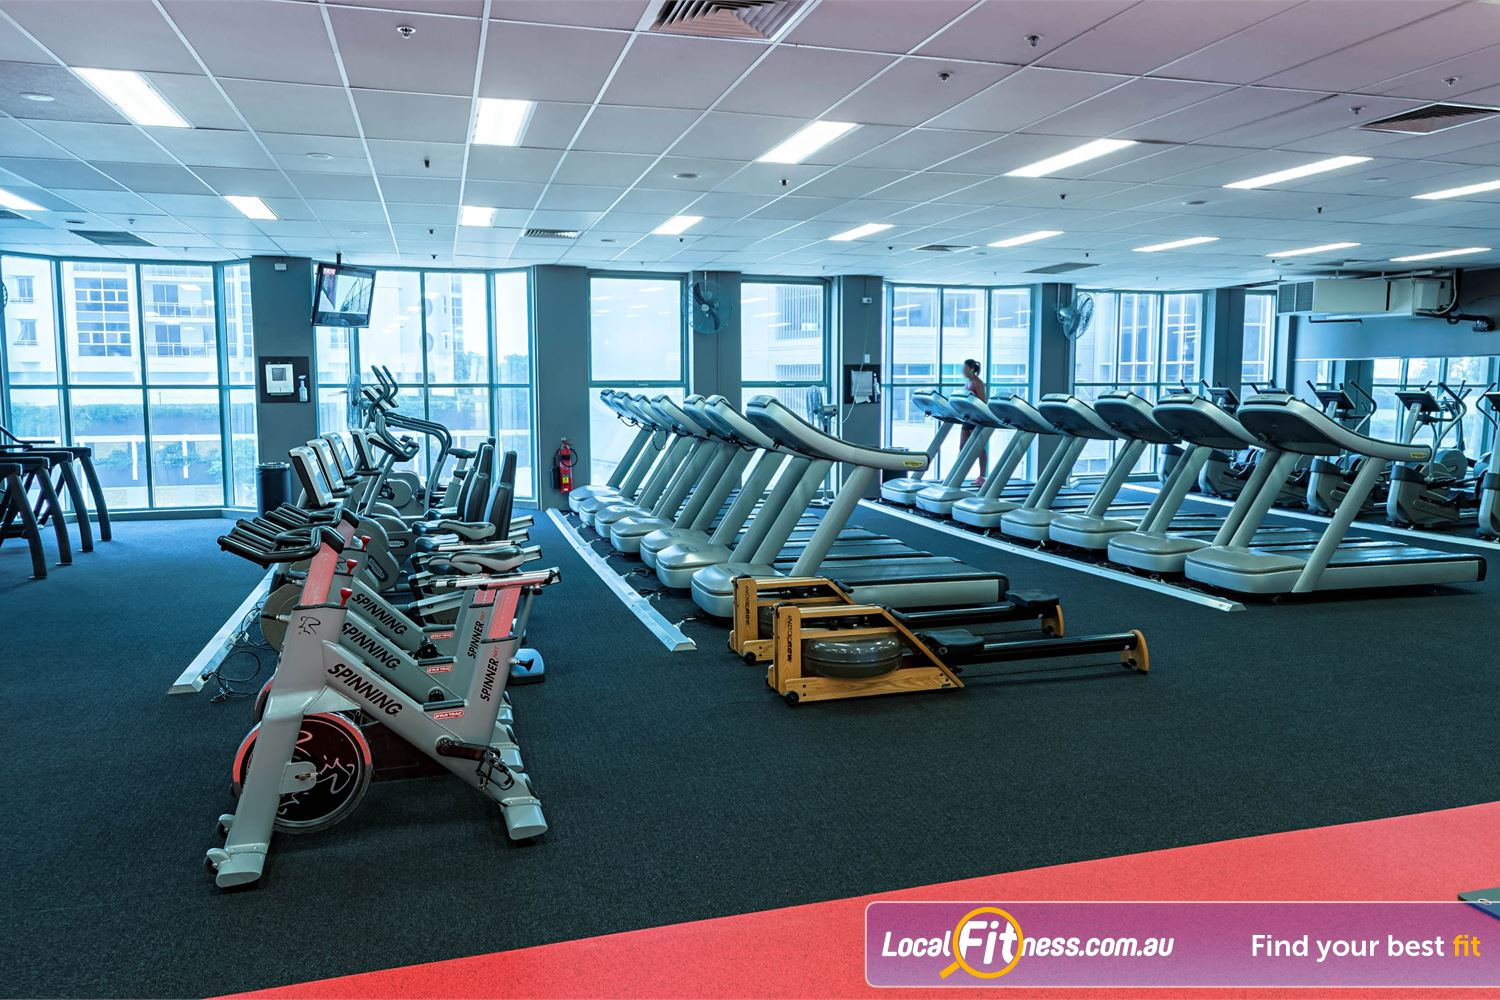 Fitness First Platinum Spring St Near Queens Park The fully equipped Spring St Bondi cardio area.